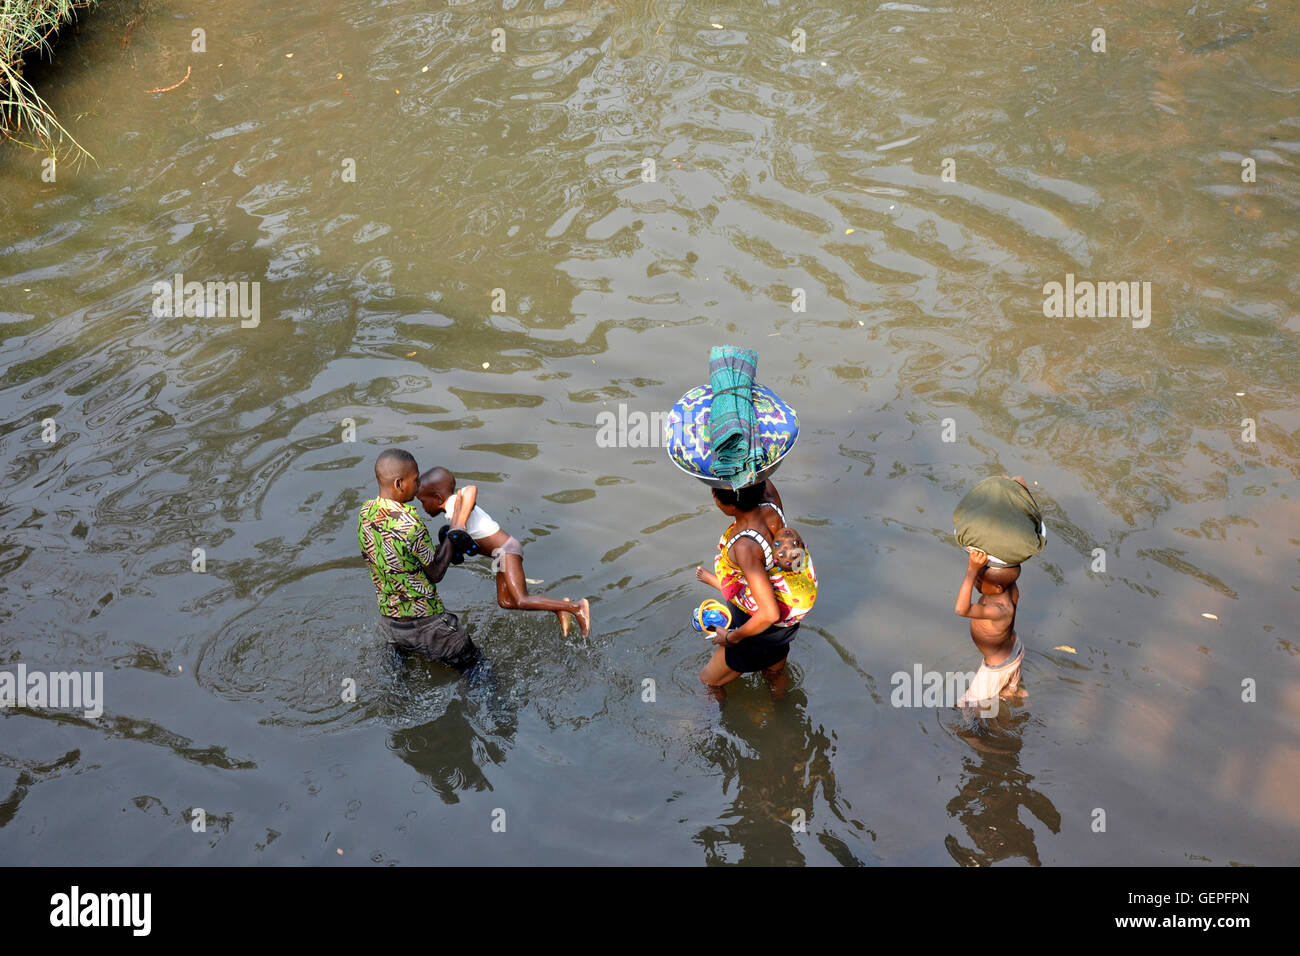 Togo, surrounding of Lomè, washing in the river - Stock Image